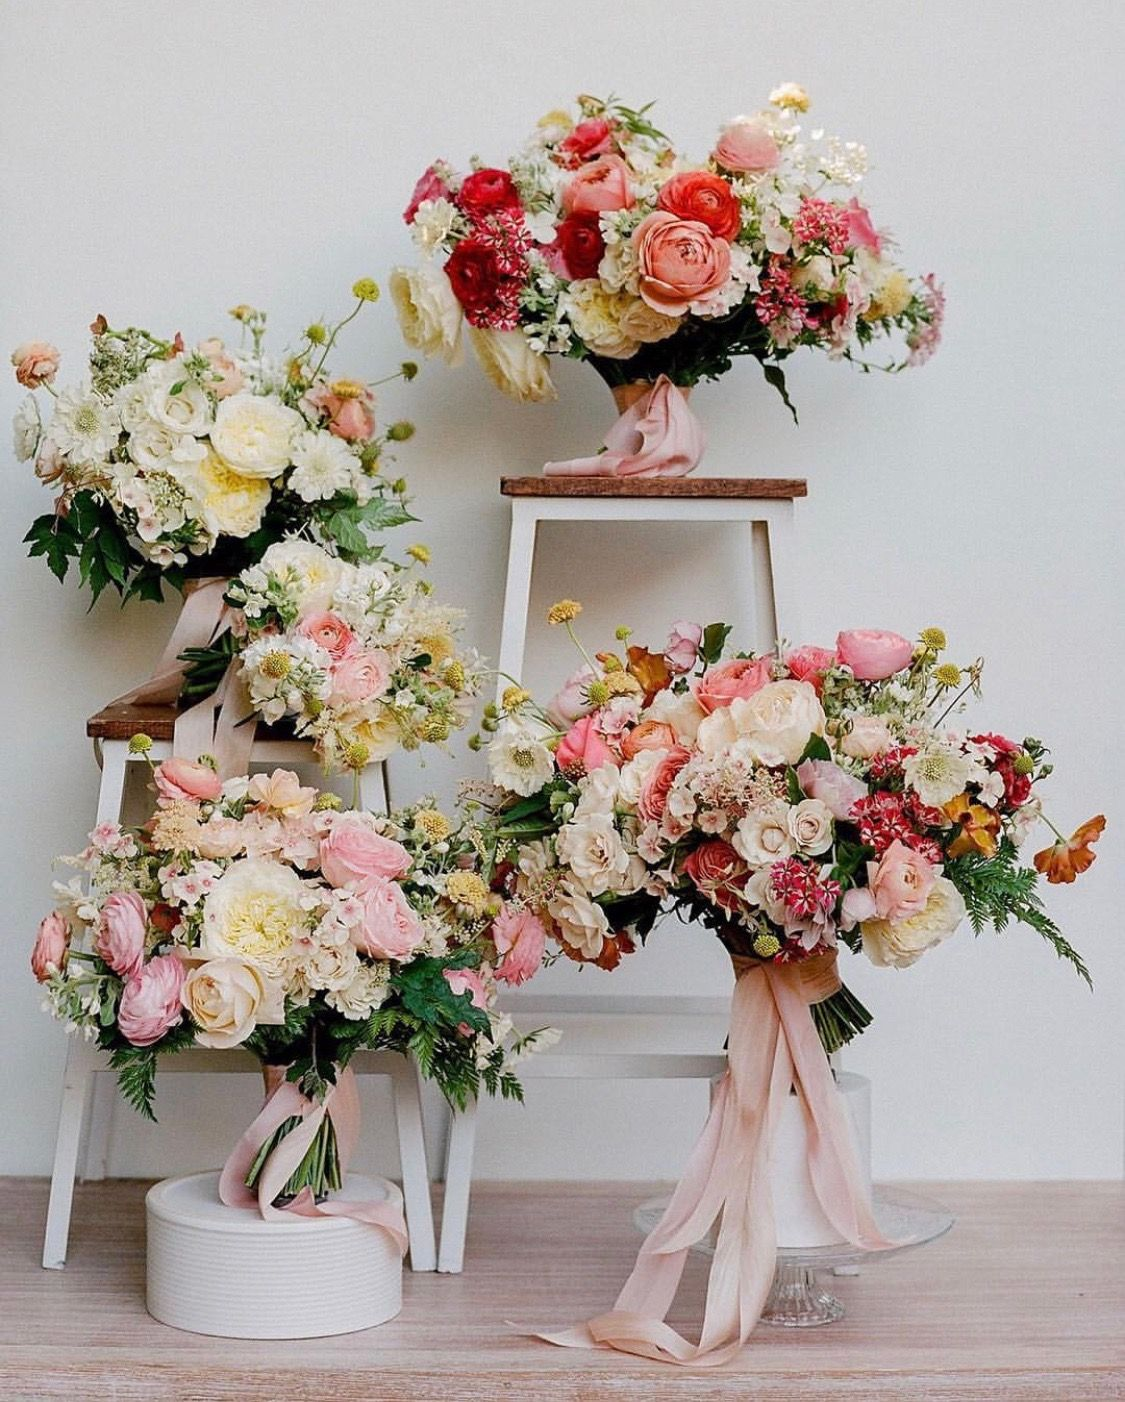 Wedding Flowers Bridal Bouquet Prices: Pin By Erin Taylor On Bouqs